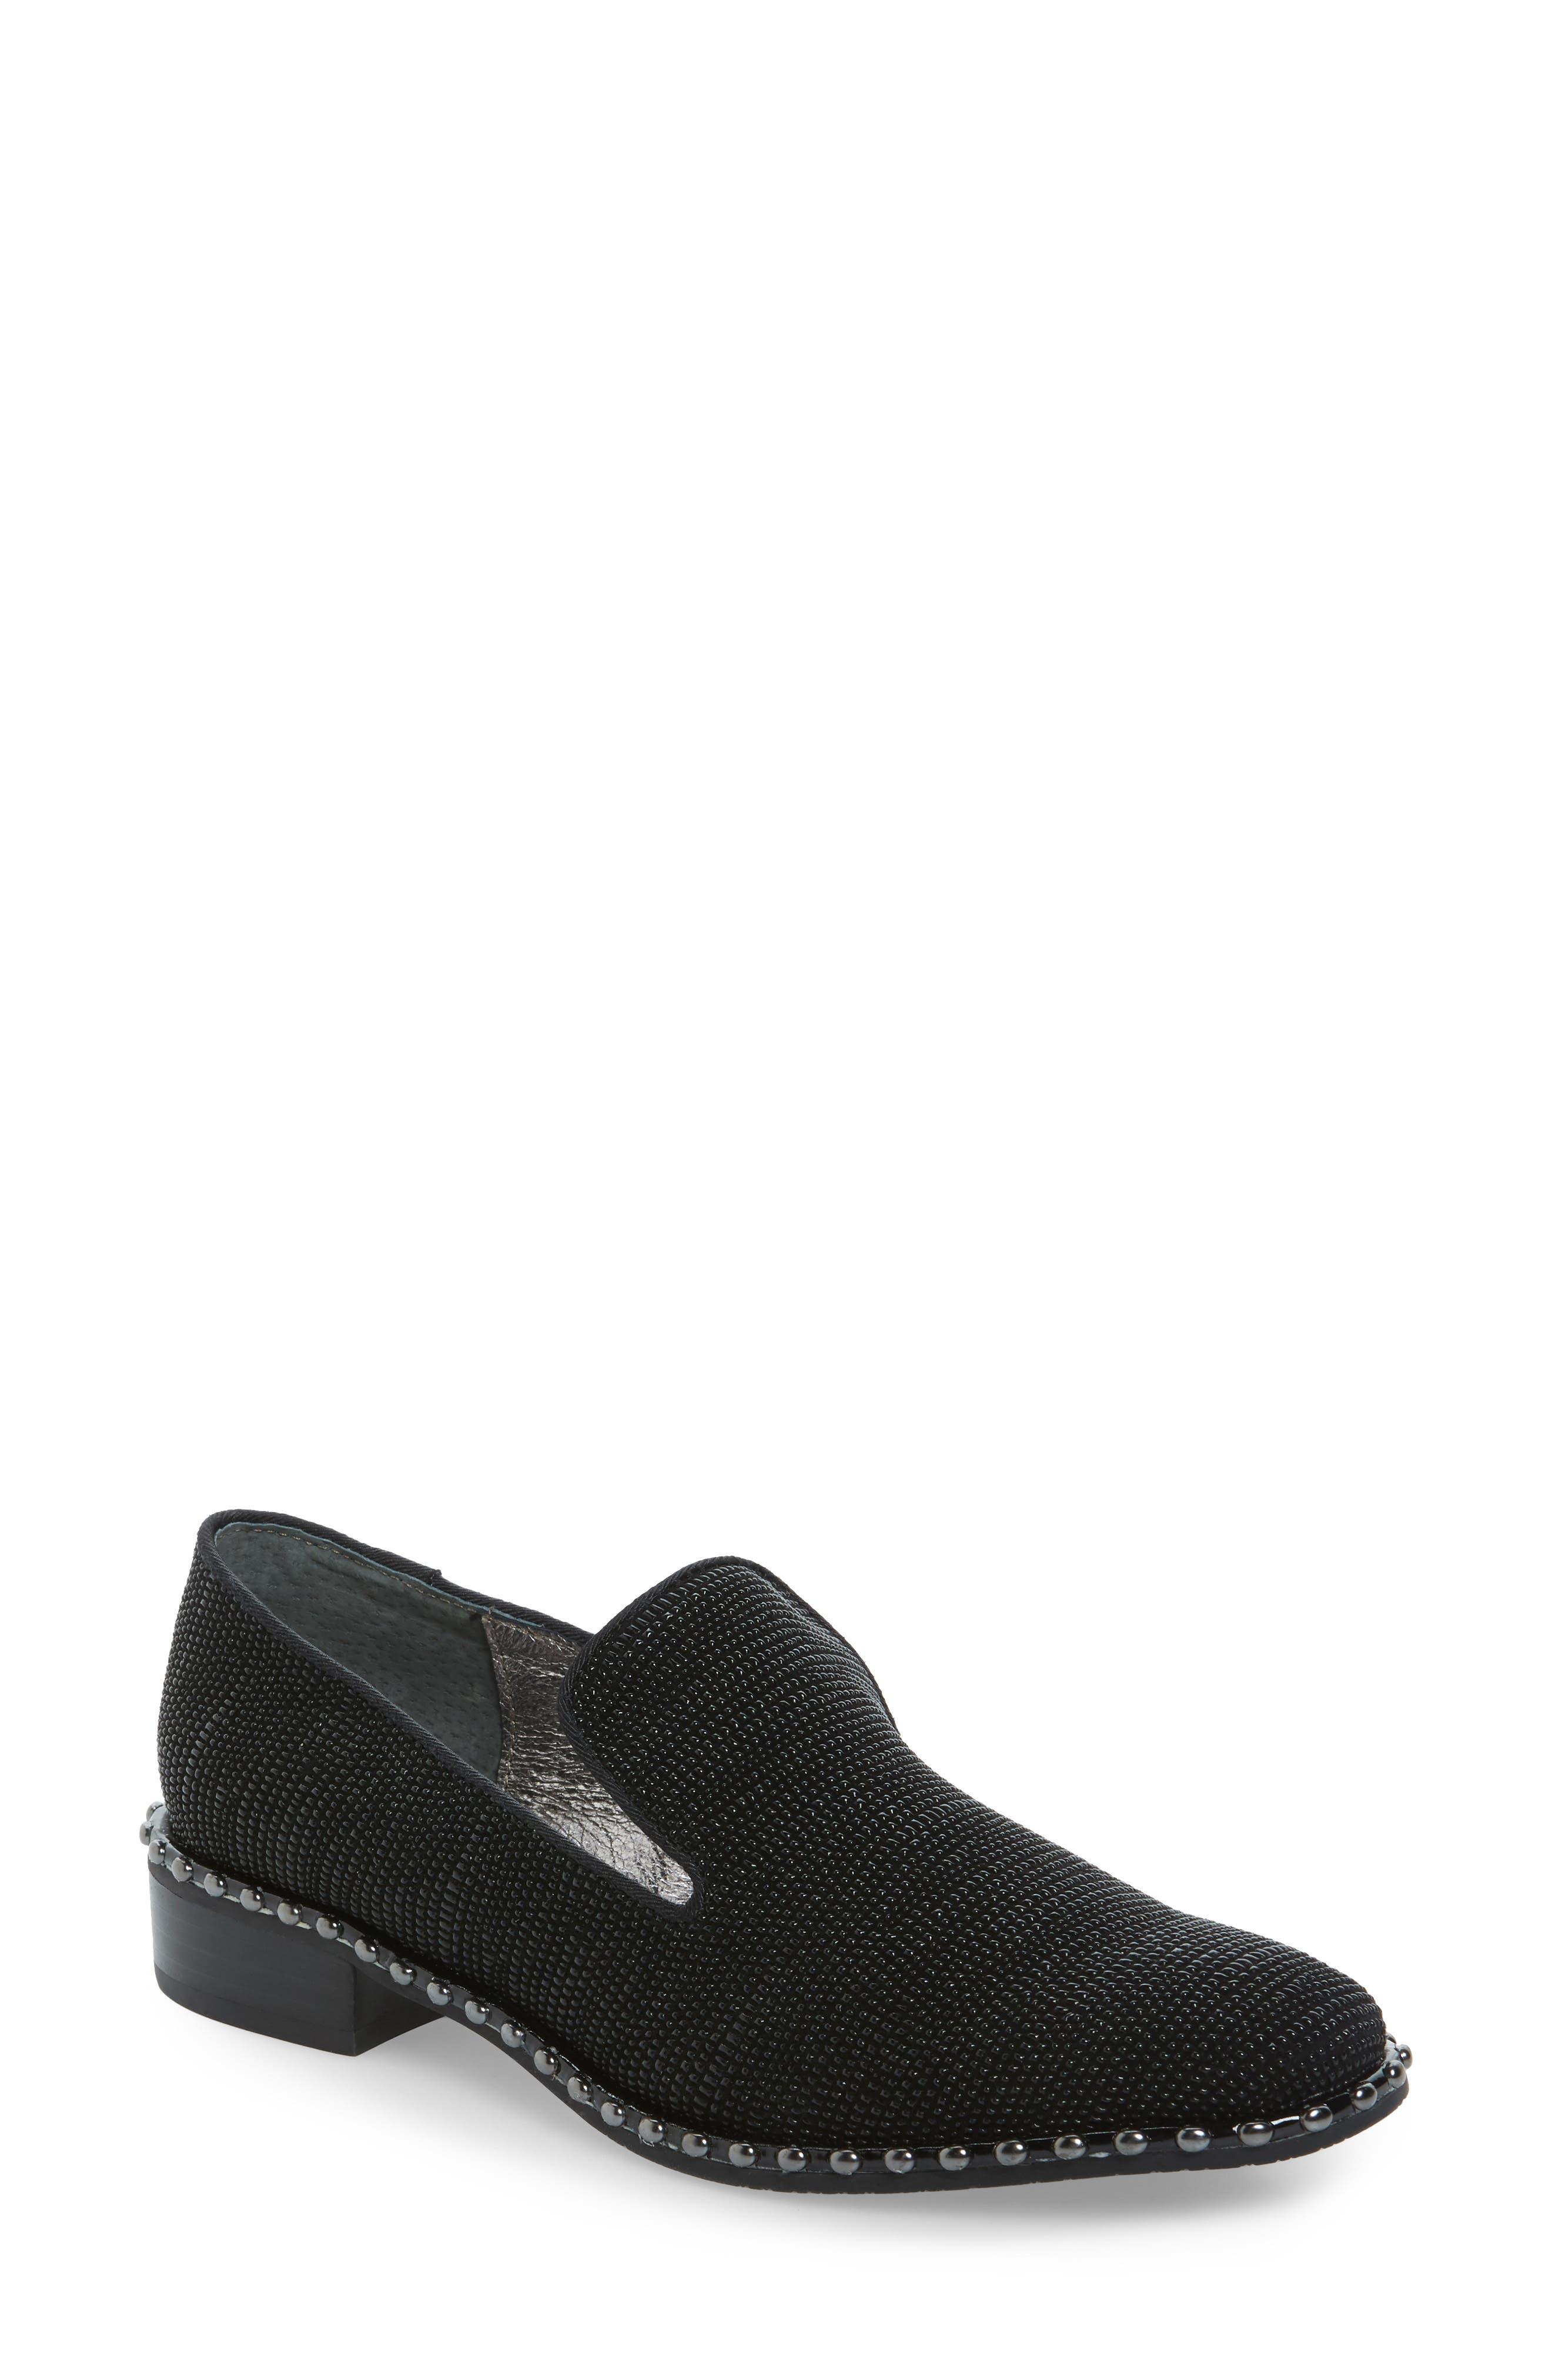 'Prince' Studded Smoking Slipper Flat,                         Main,                         color, 011